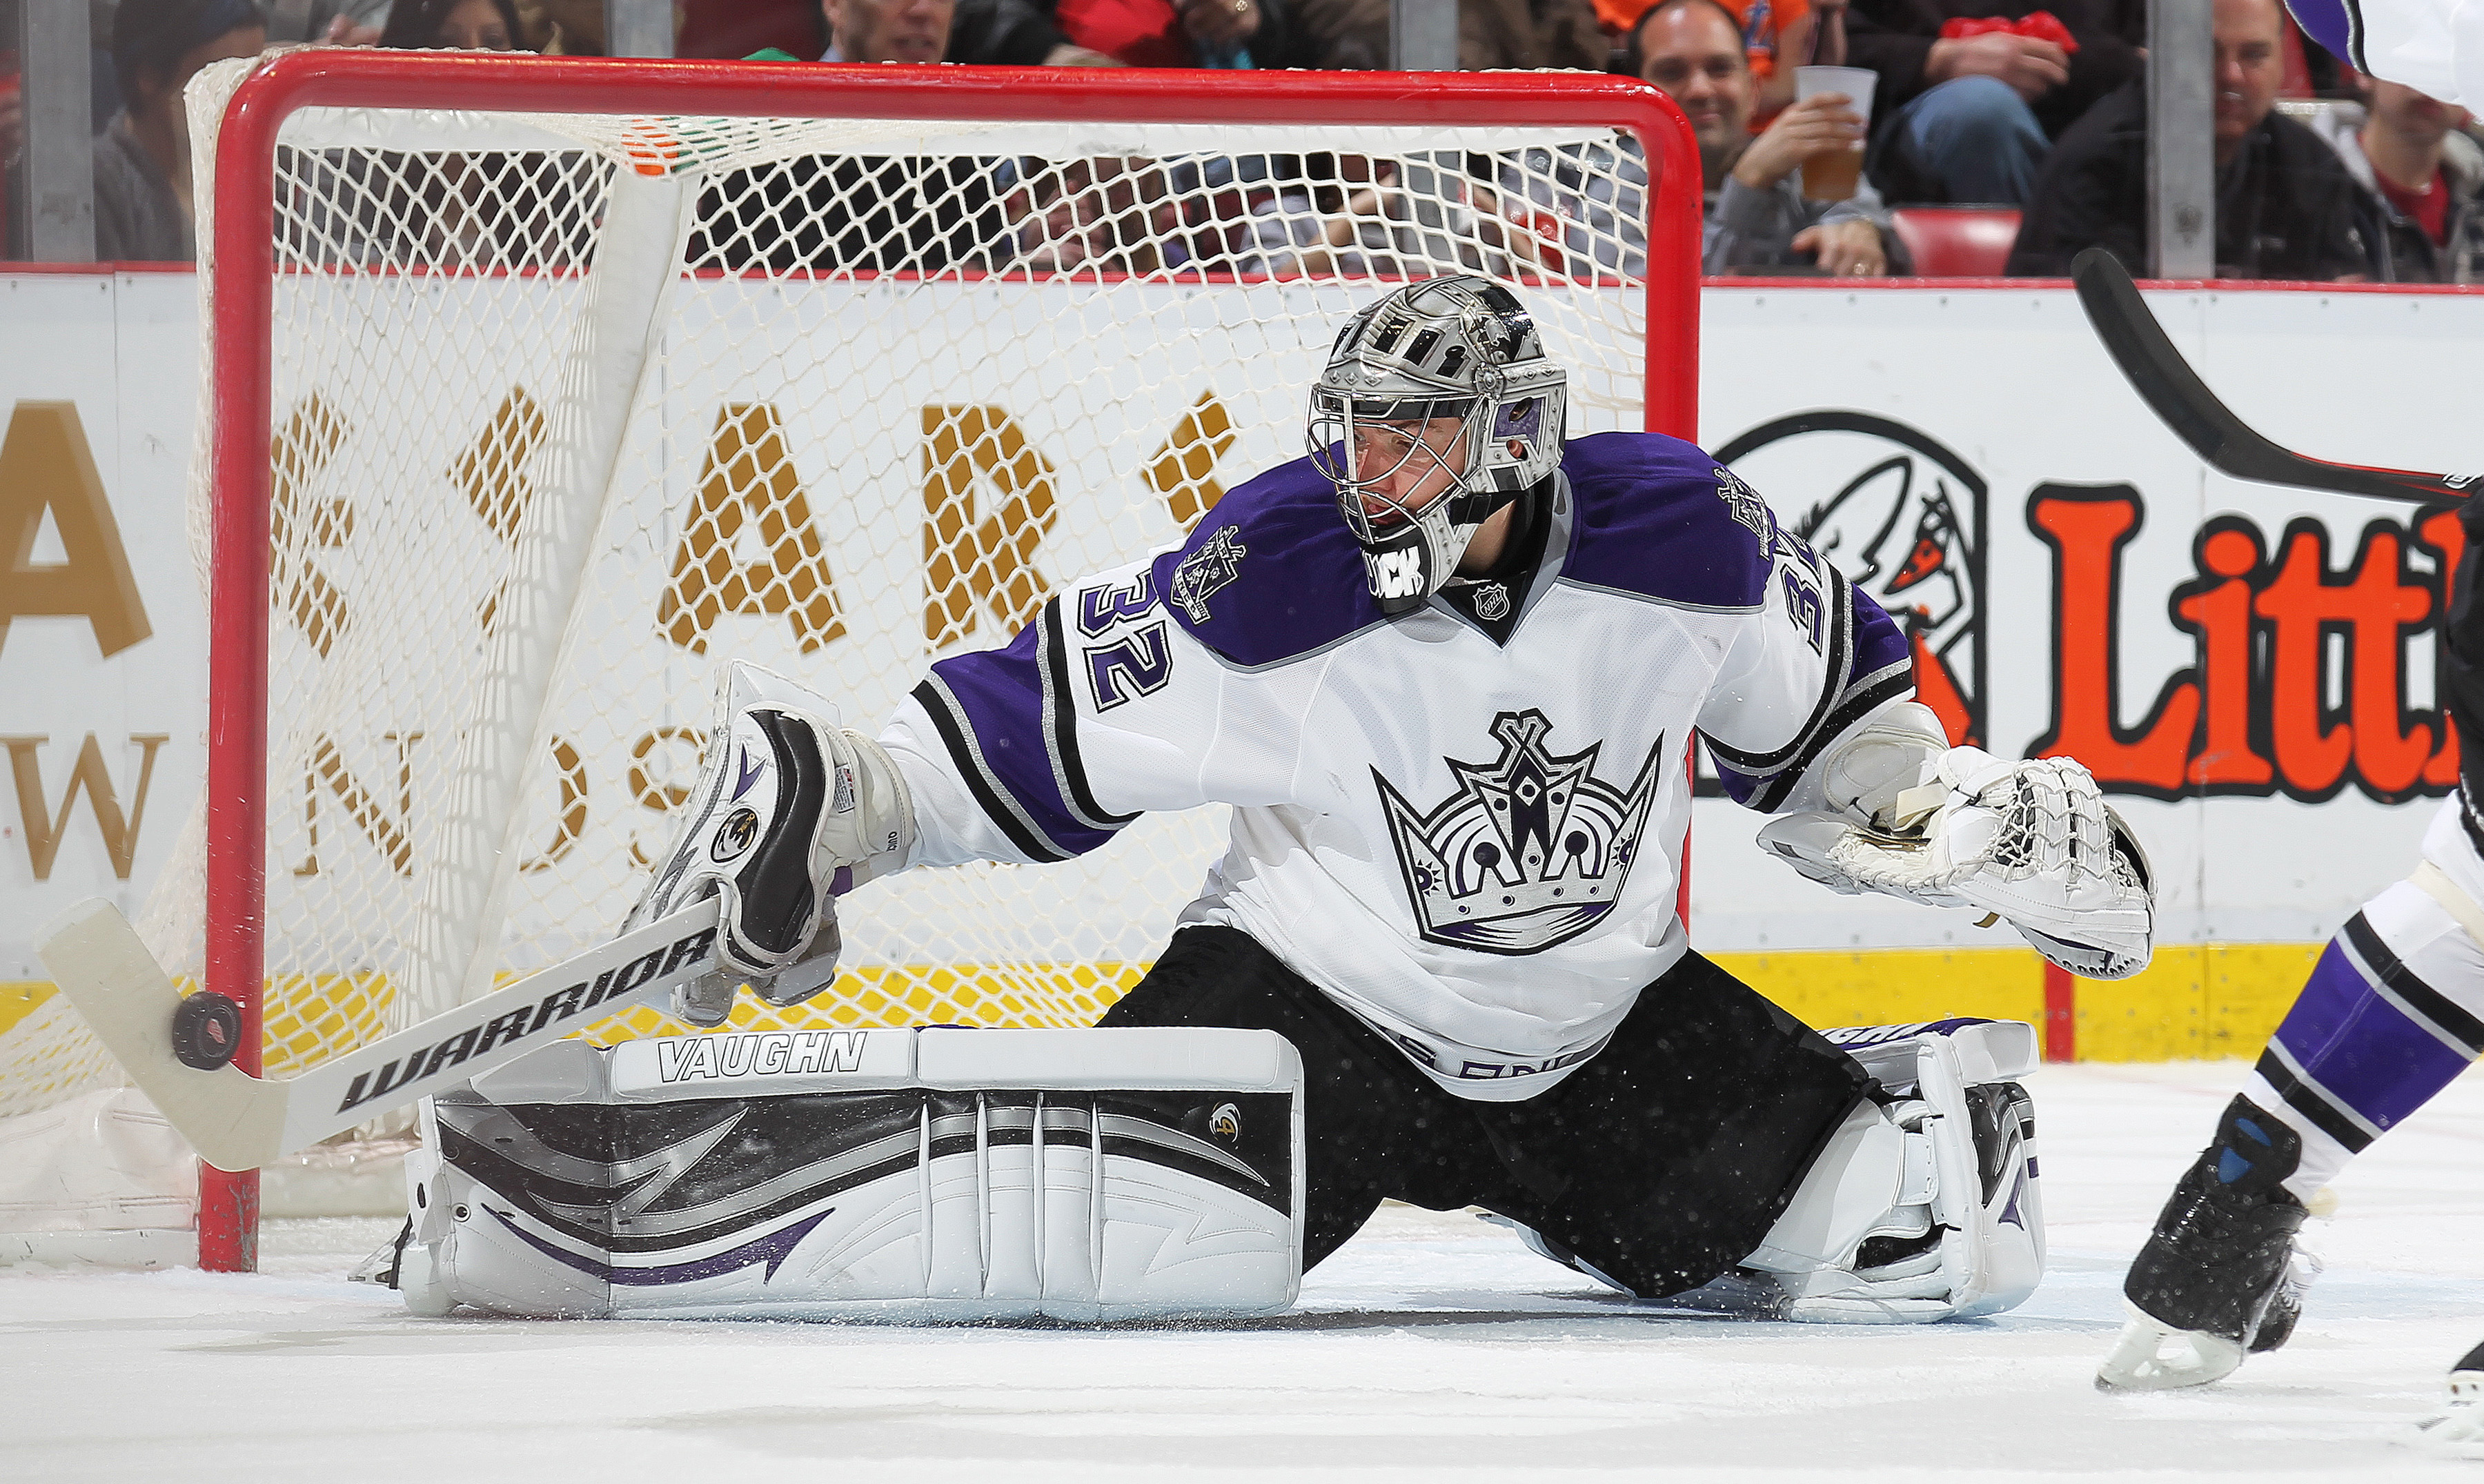 DETROIT, MI - MARCH 9:  Jonathan Quick #32 of the Los Angeles Kings gets his stick on a shot in a game against the Detroit Red Wings on March 9, 2011 at the Joe Louis Arena in Detroit, Michigan. The Kings defeated the Wings 2-1. (Photo by Claus Andersen/G